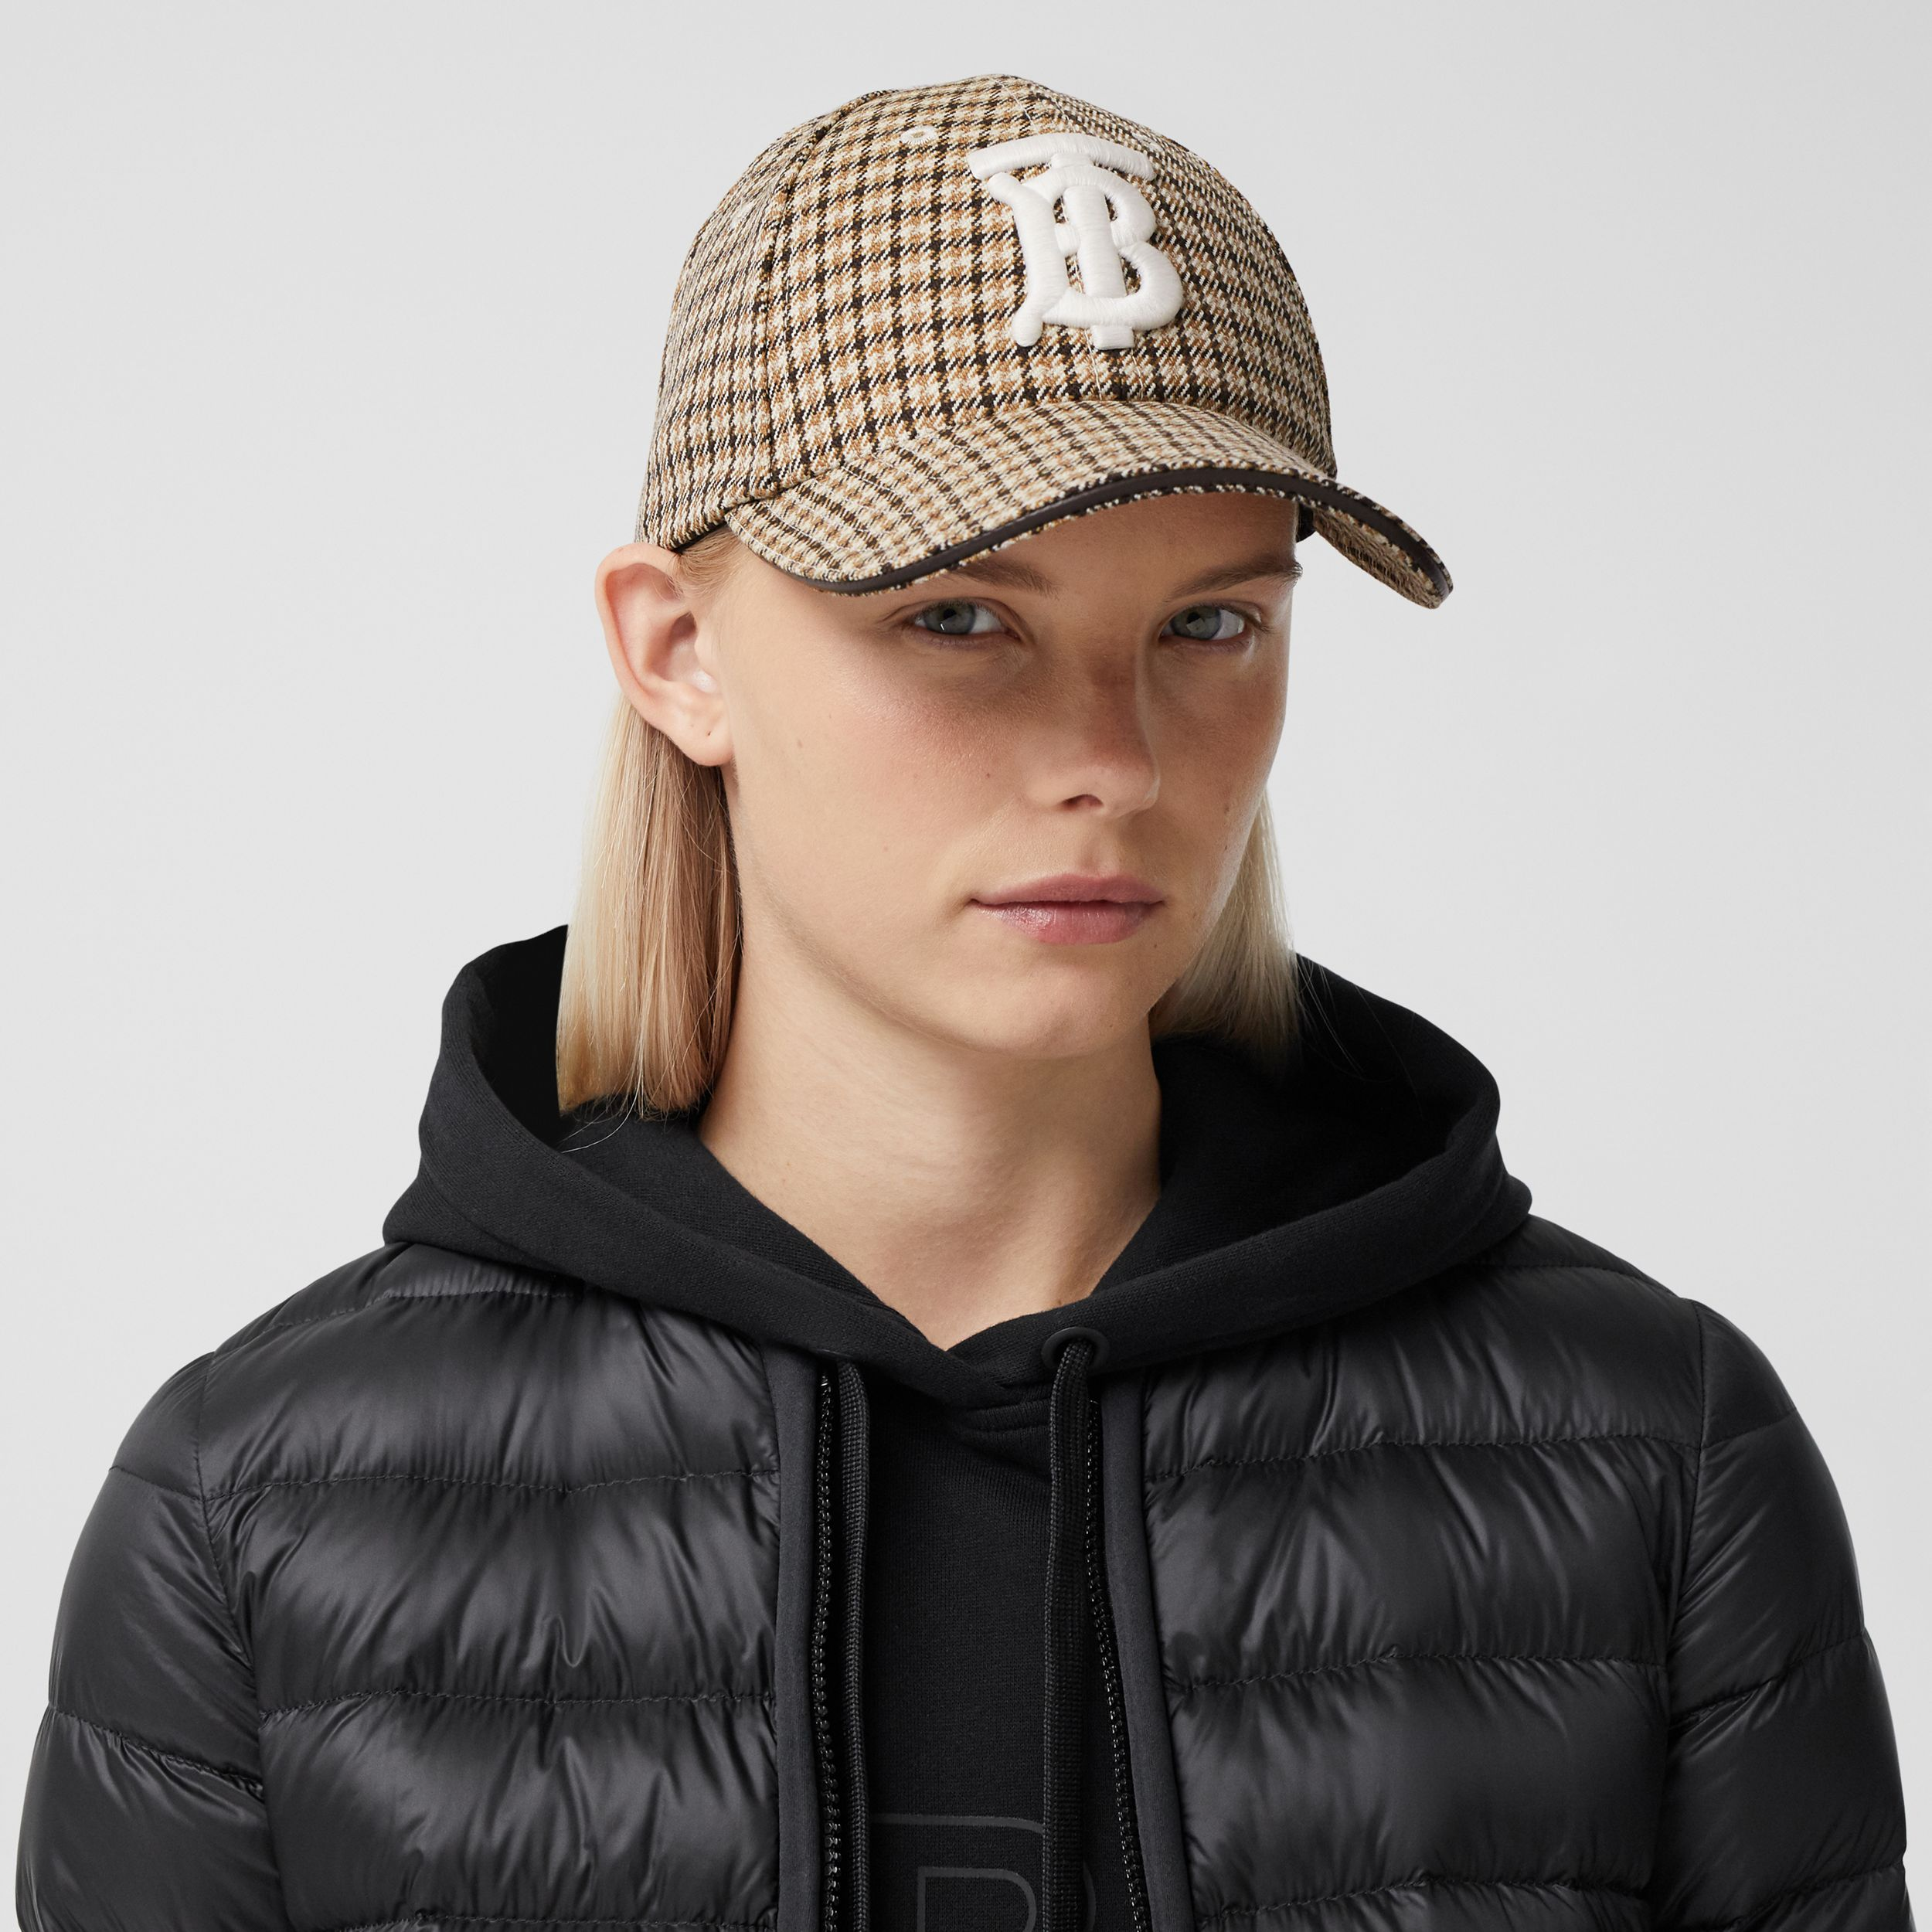 Monogram Motif Houndstooth Check Baseball Cap in Fawn | Burberry - 3